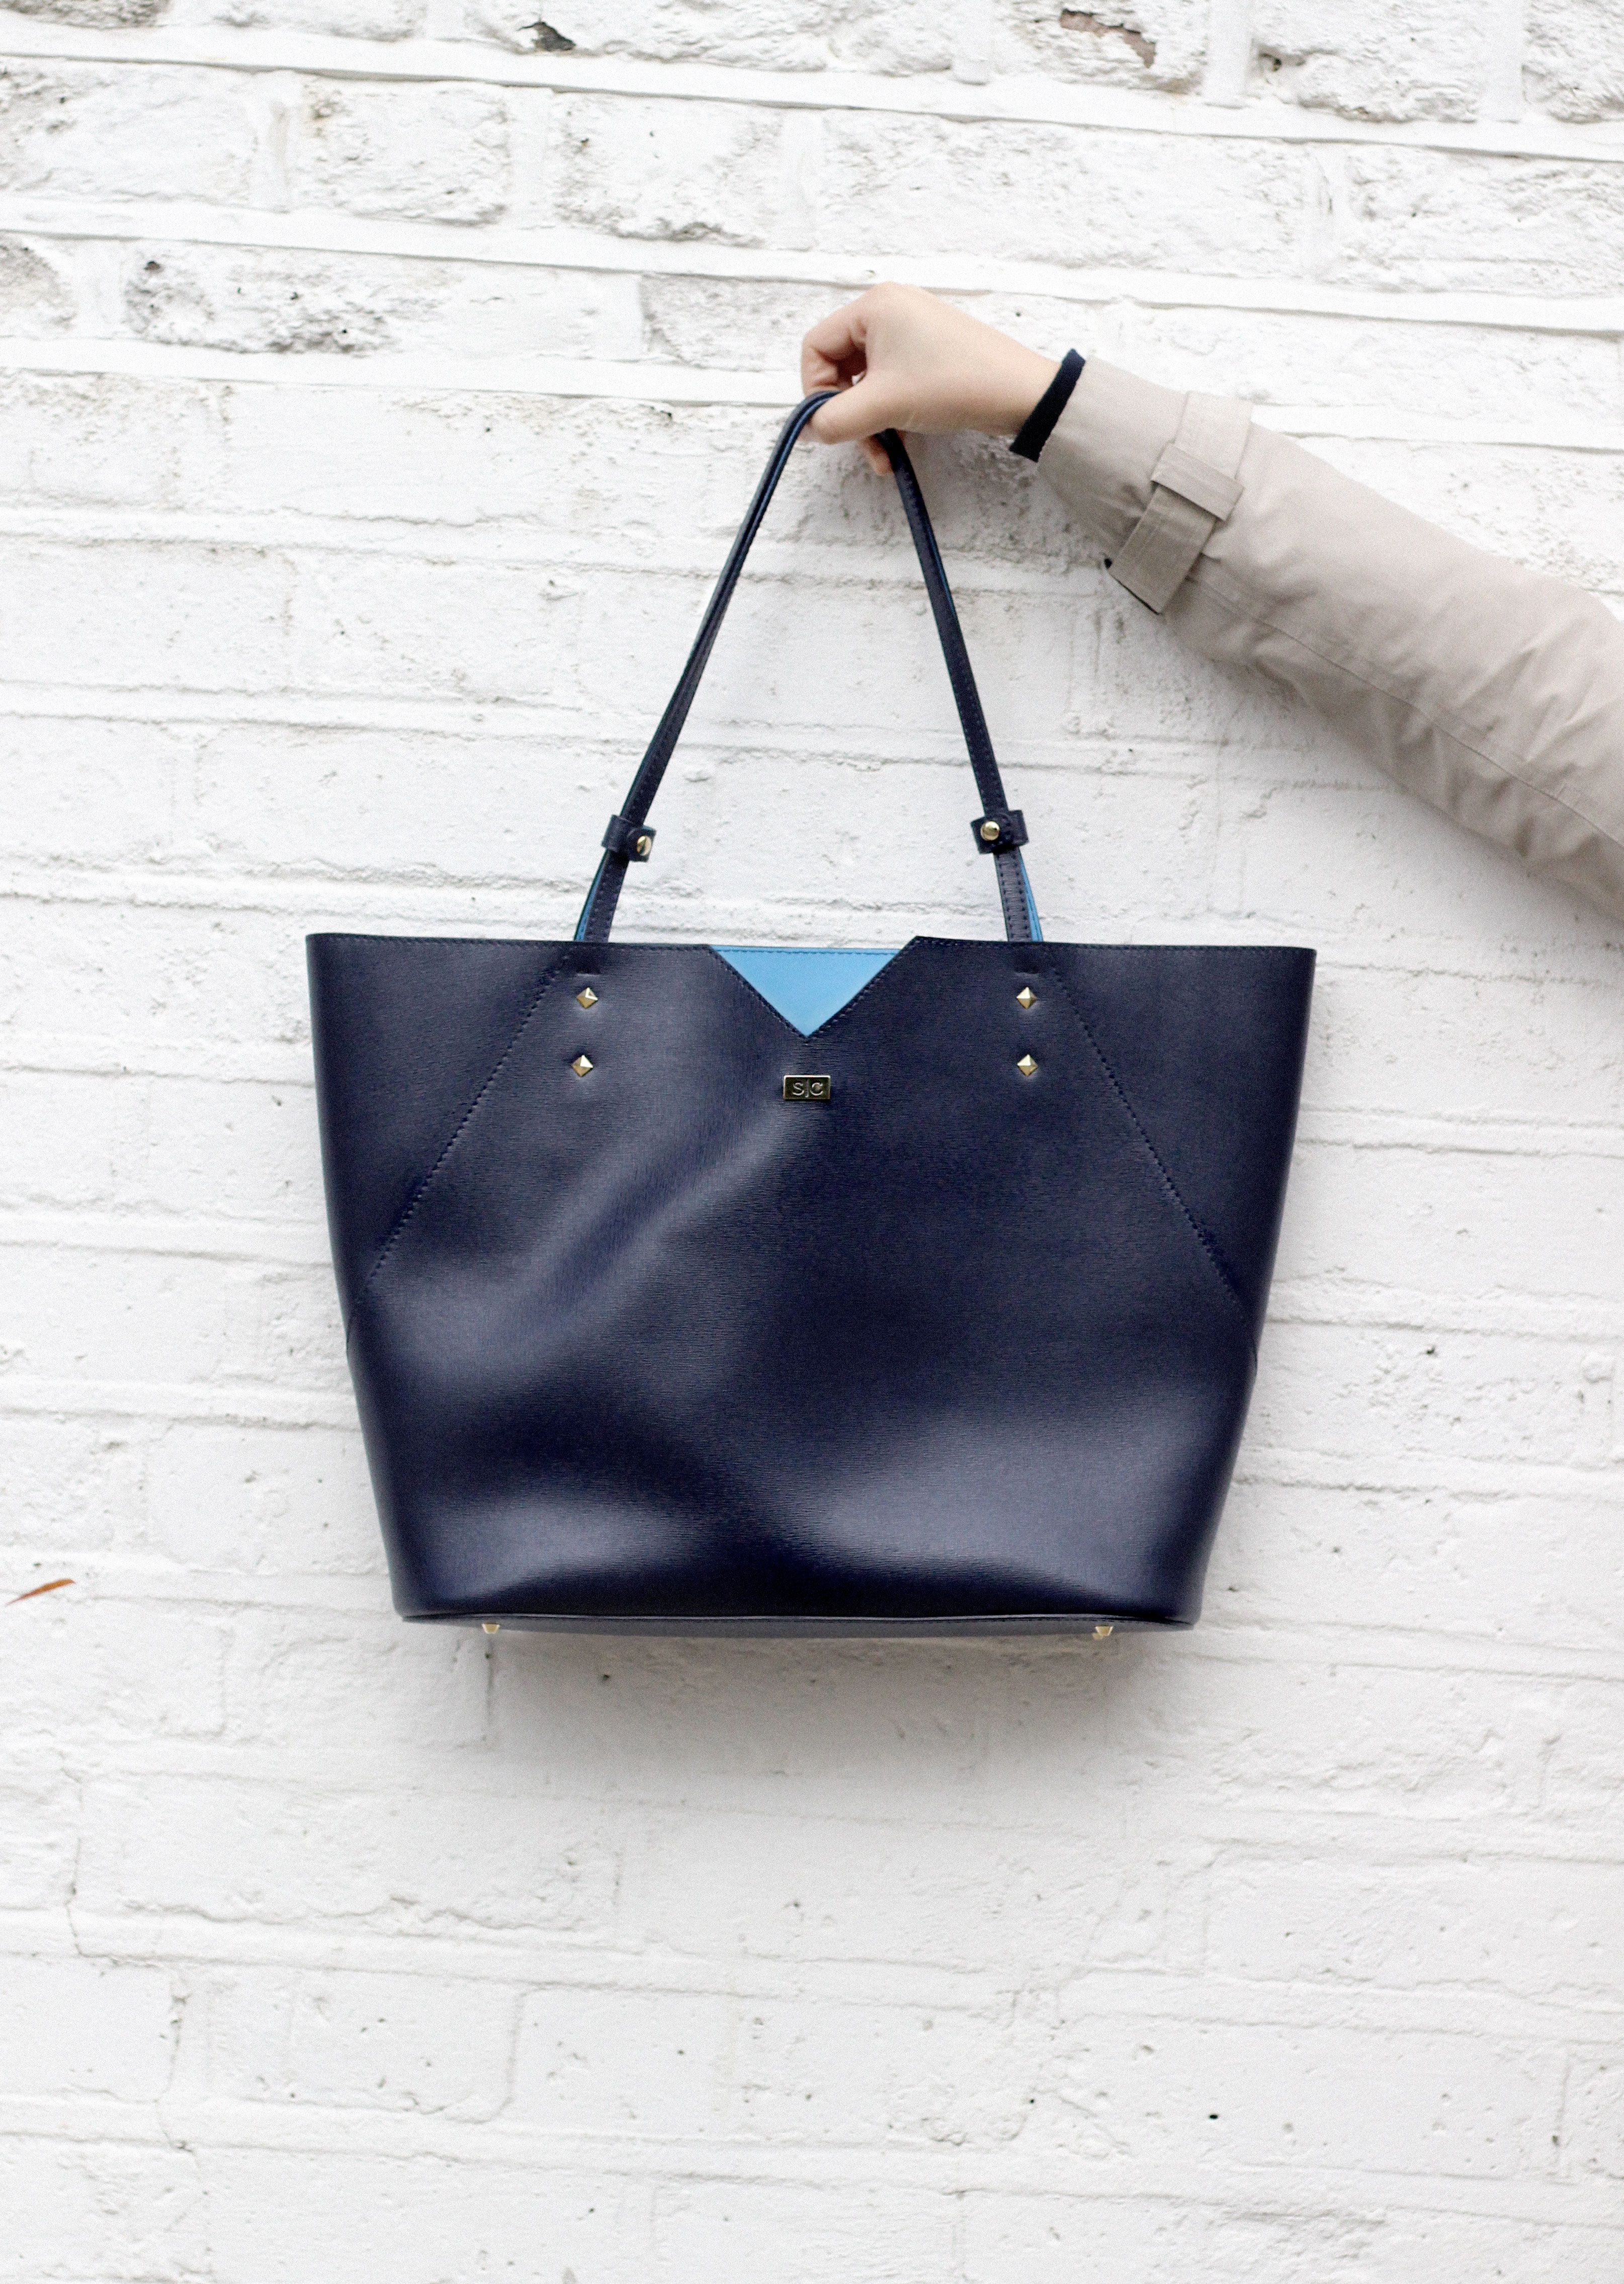 3085478caa38 Veronica tote bag in luxurious navy blue Italian leather with Saffiano  pattern.